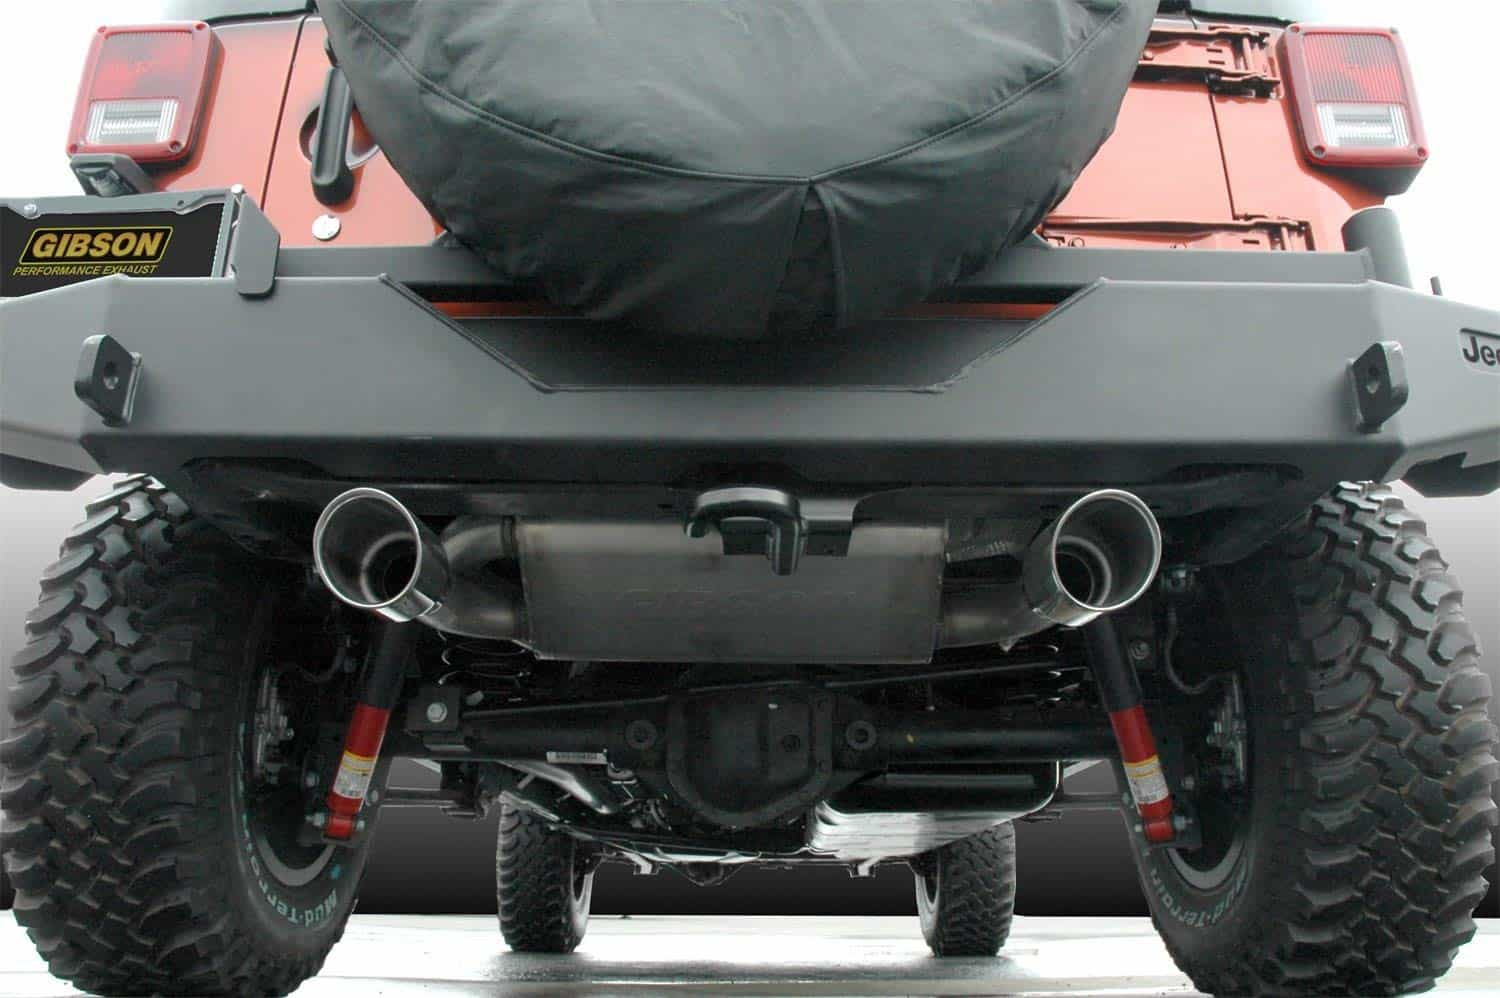 Gibson_Performance_Exhaust_Gibson_17303_Cat_Back_Dual_Split_Exhaust_System